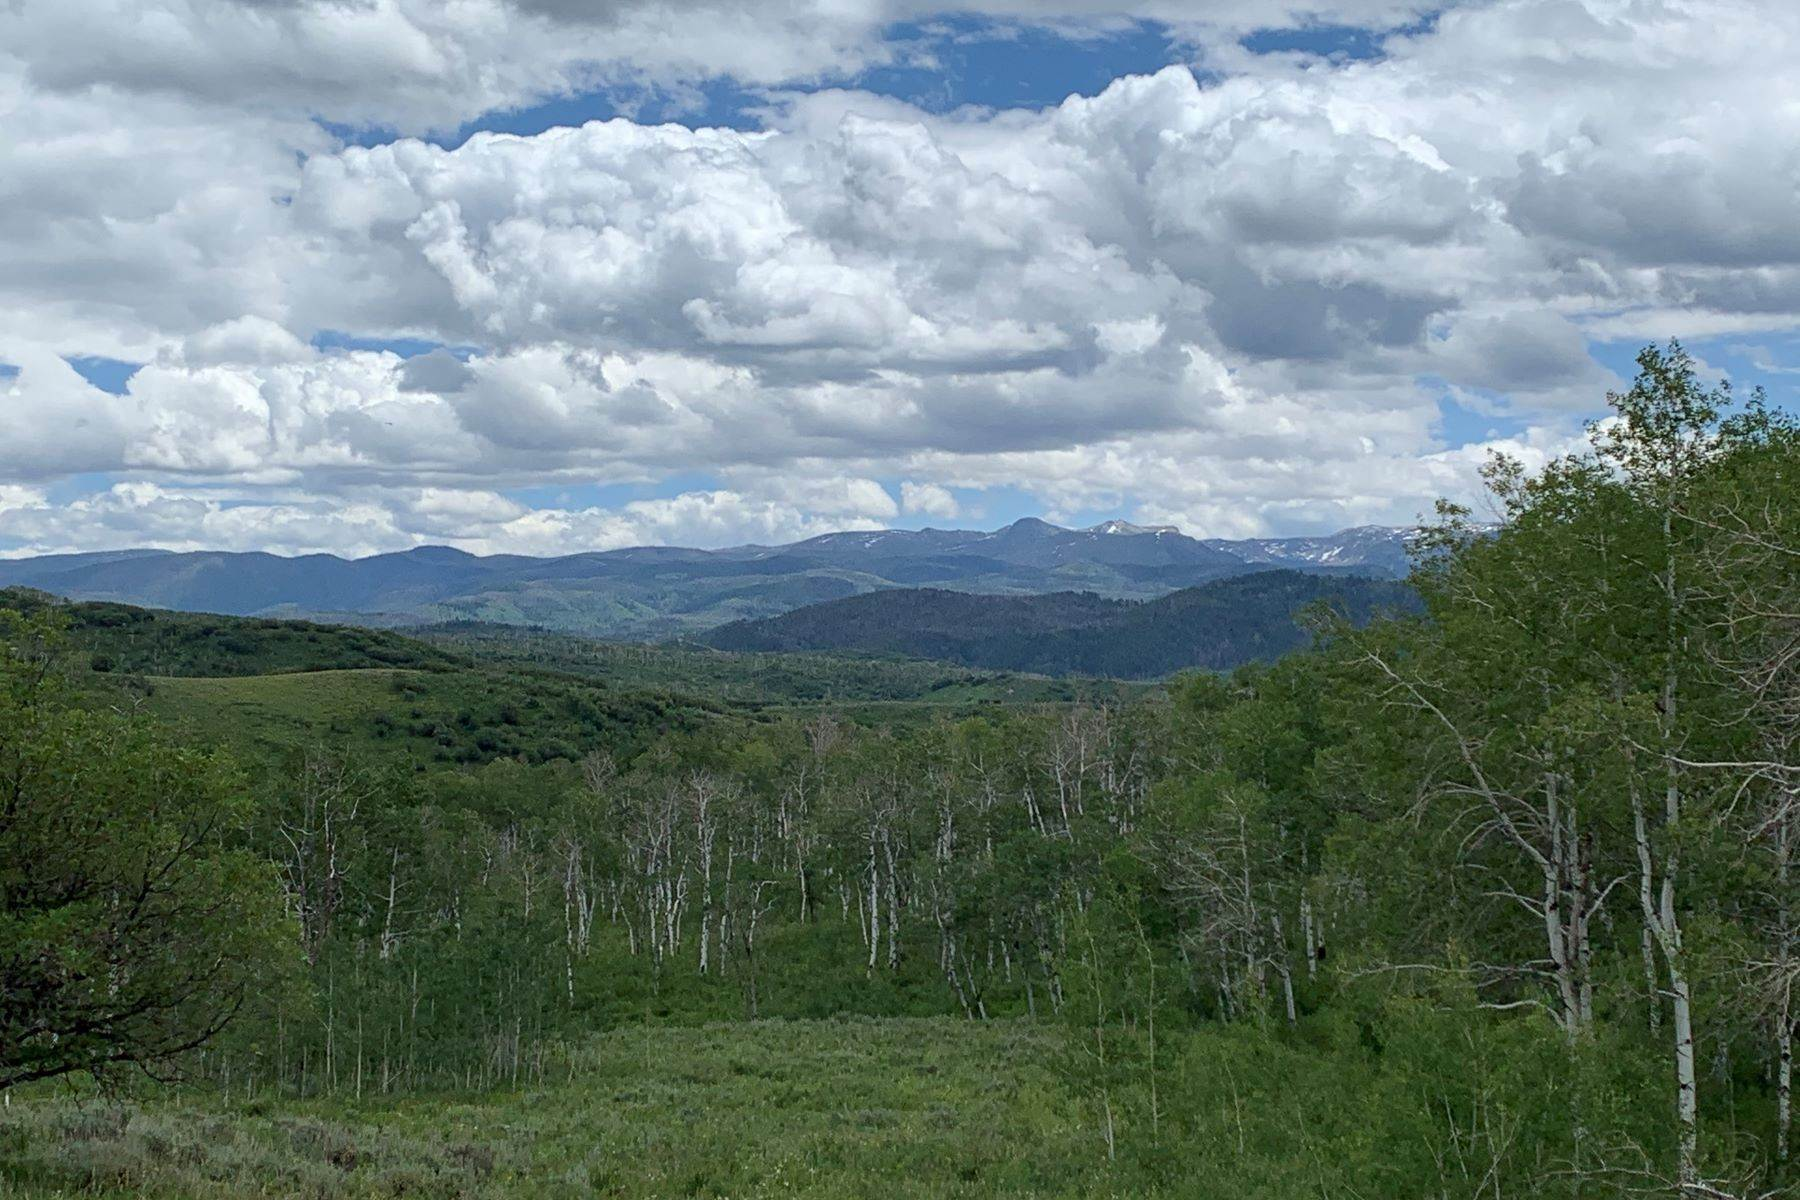 Property for Sale at Murphy Larsen Ranch Lot #6 56005 Hannahs Way Clark, Colorado 80428 United States